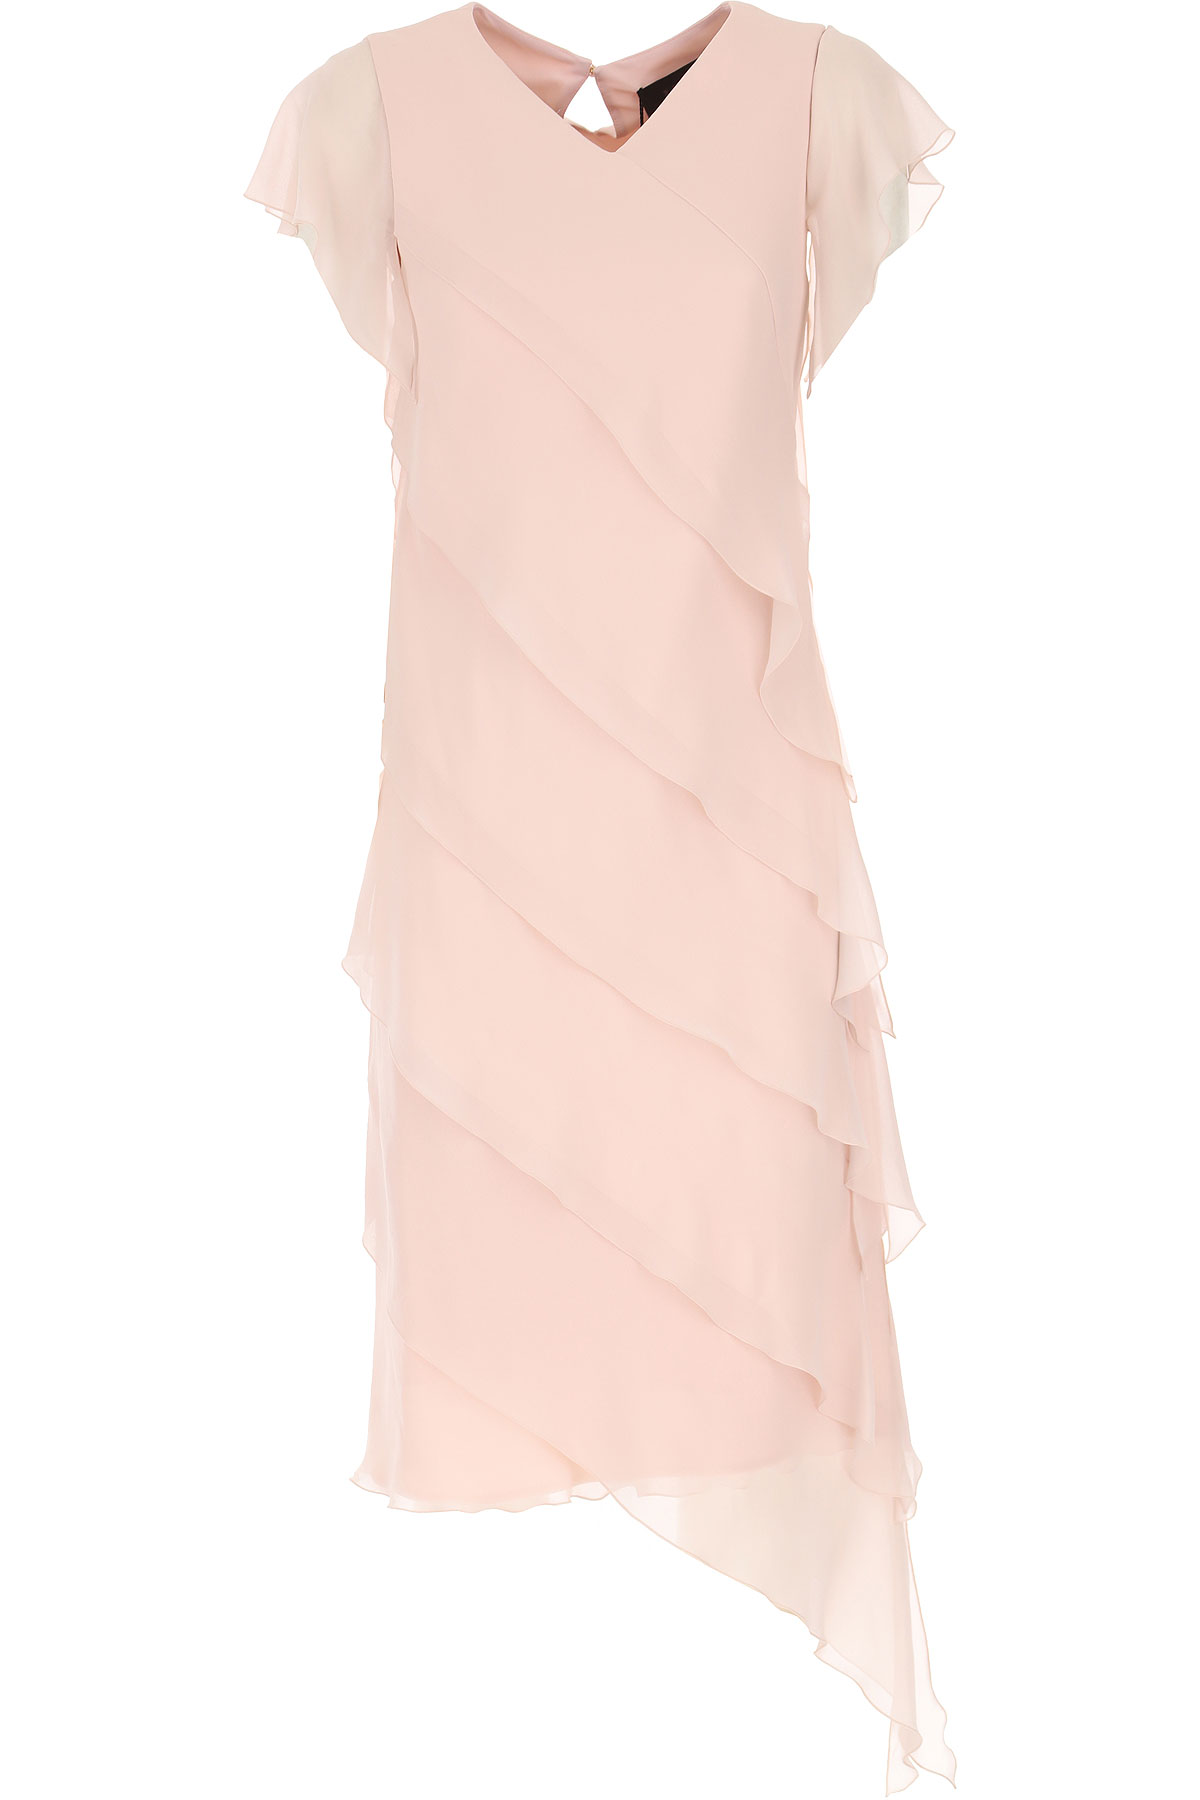 Max Mara Dress for Women, Evening Cocktail Party On Sale, soft pink, Silk, 2019, 12 6